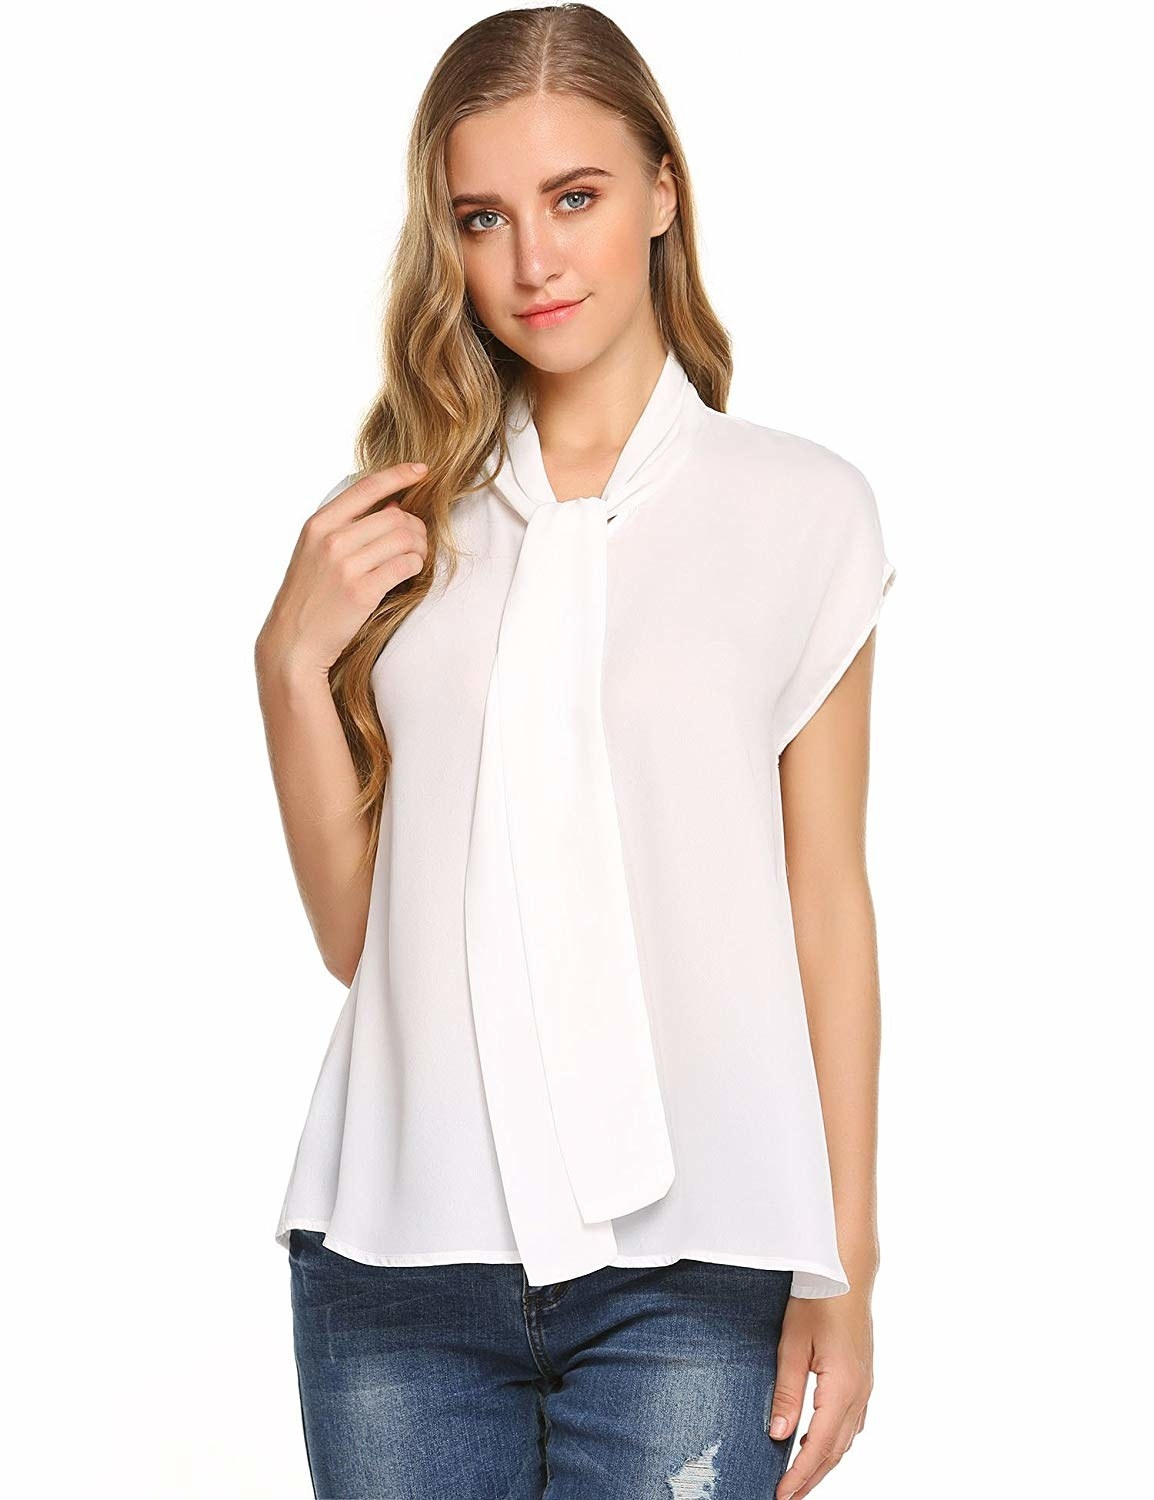 """Promising review: """"The blouse is very pretty and very breezy. I wore it to a job interview and received compliments from the interviewer."""" —KenyaGet it from Amazon for .99+ (available in sizes S-XXL and in four colors)."""